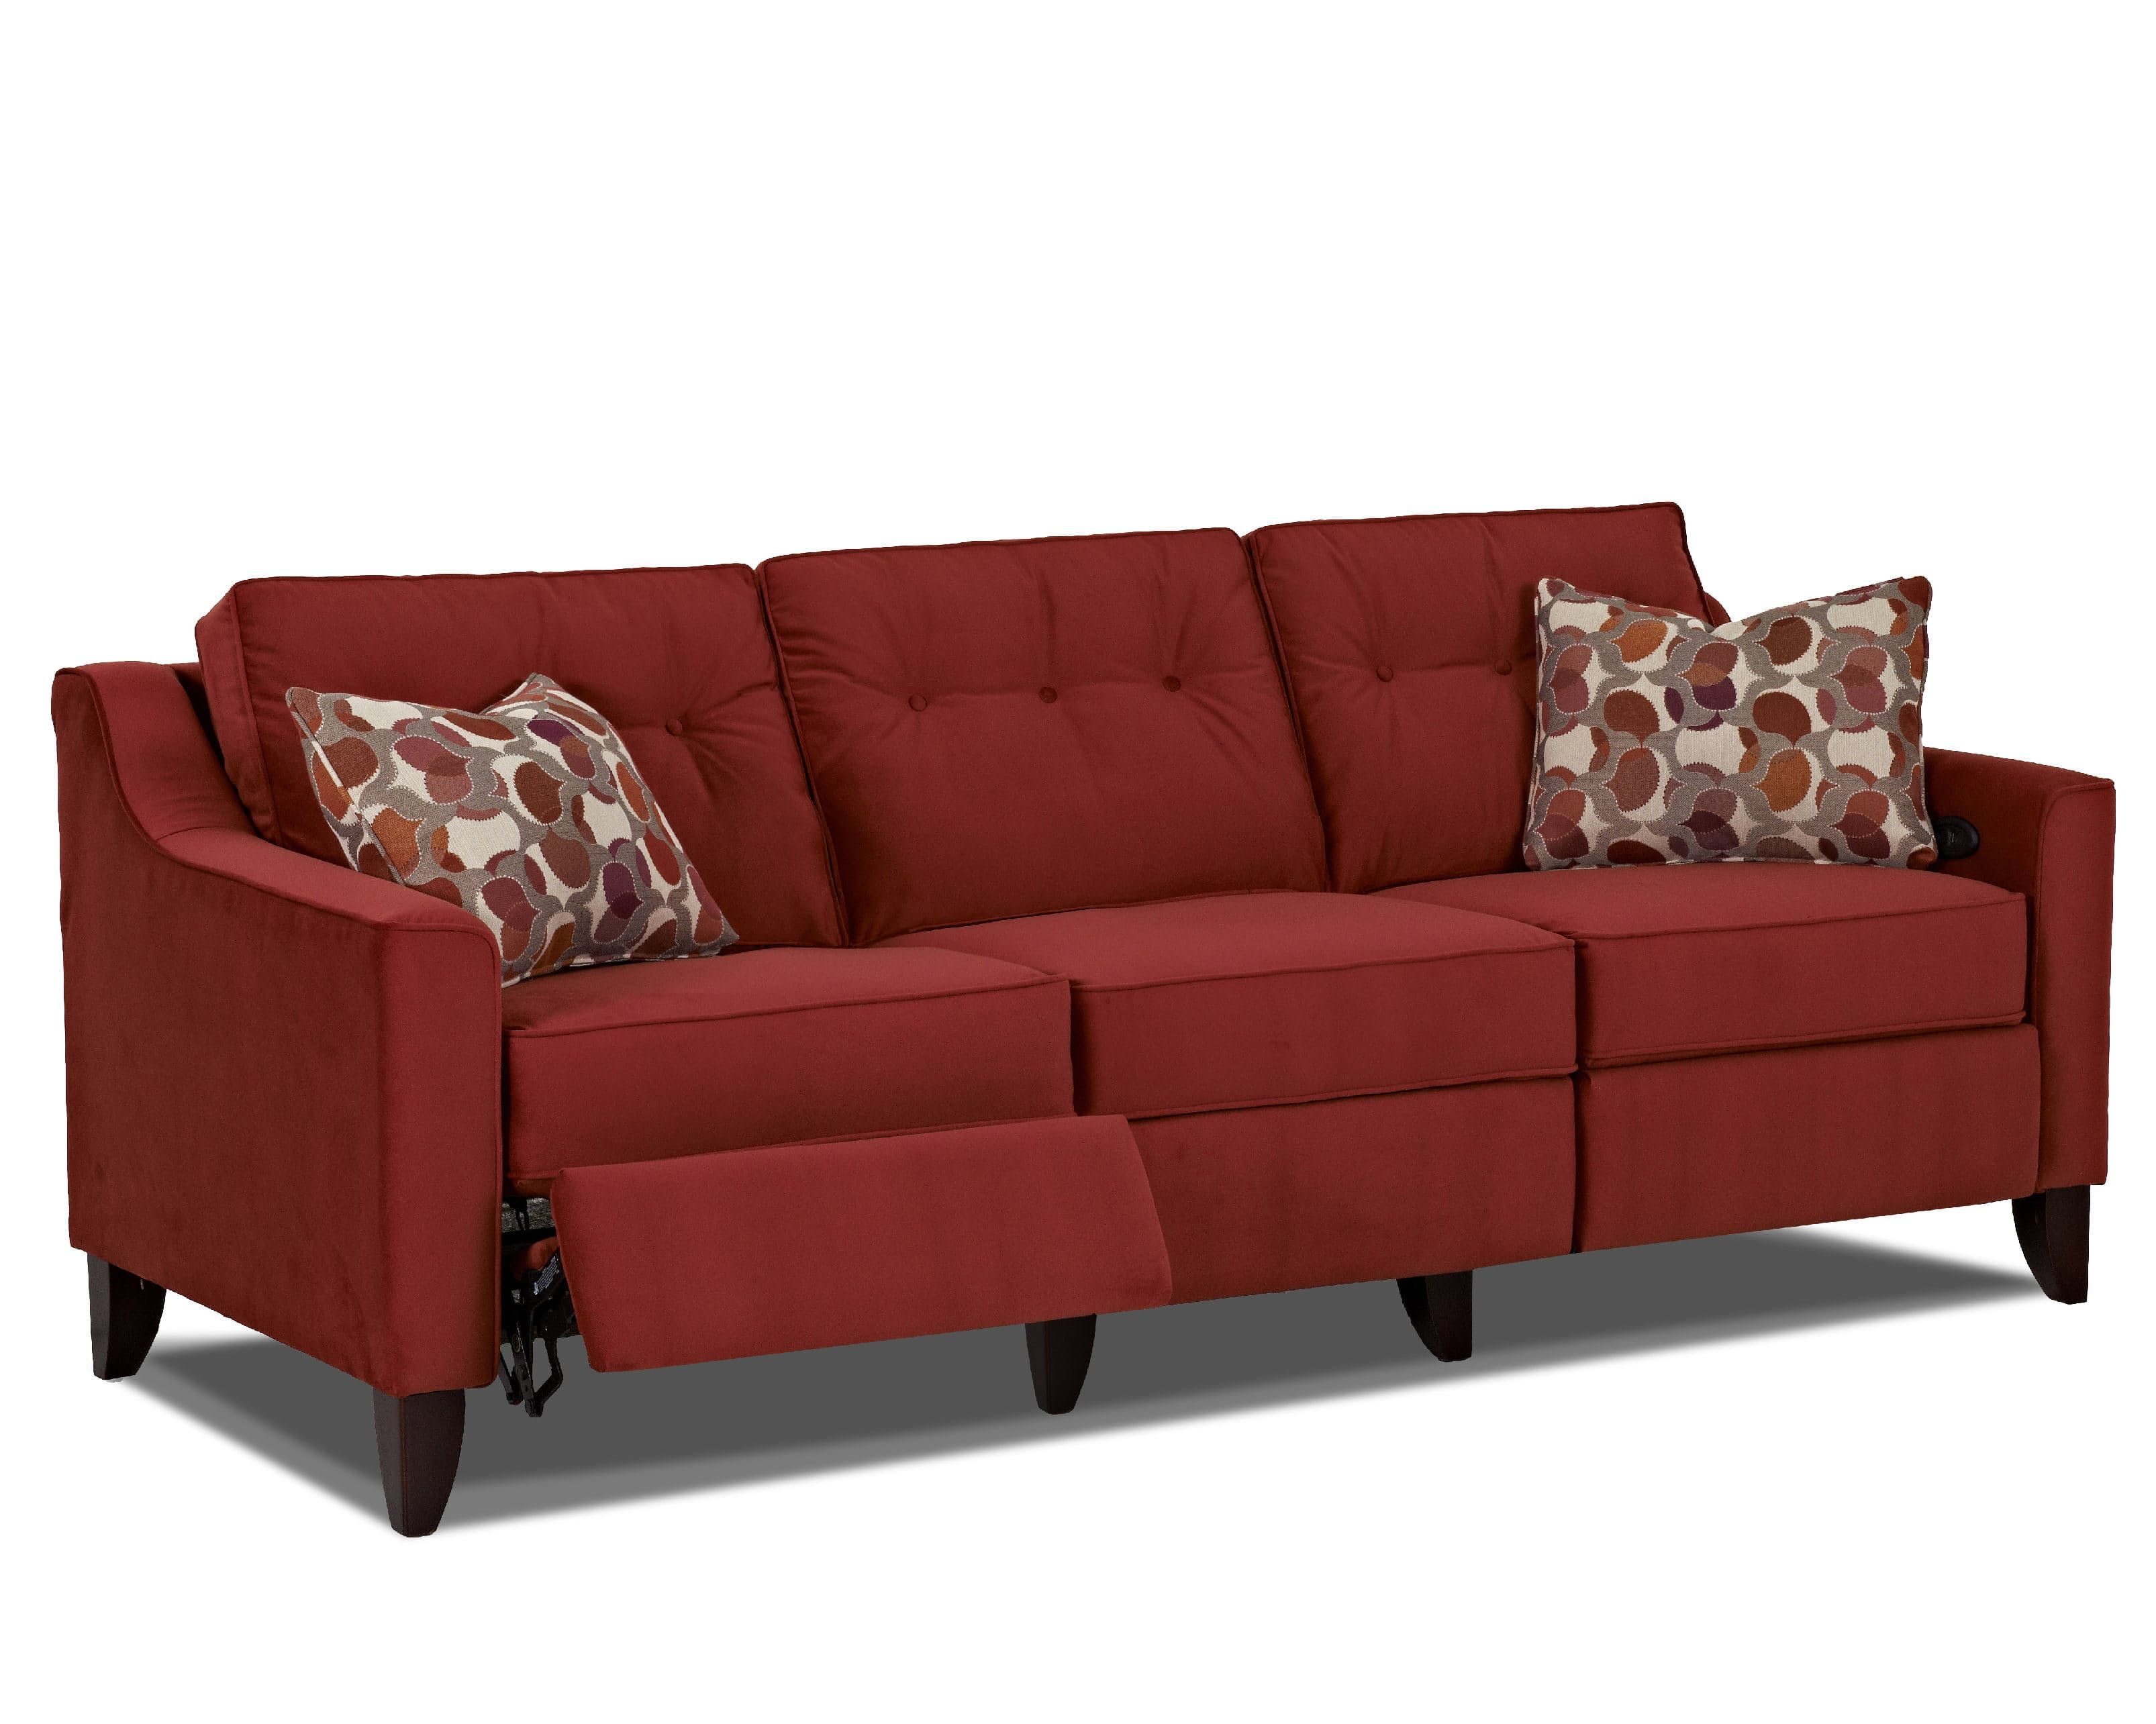 Beau Trisha Yearwood Living Room Audrina Sofa 31603 PWRS   China Towne Furniture    Solvay, NY